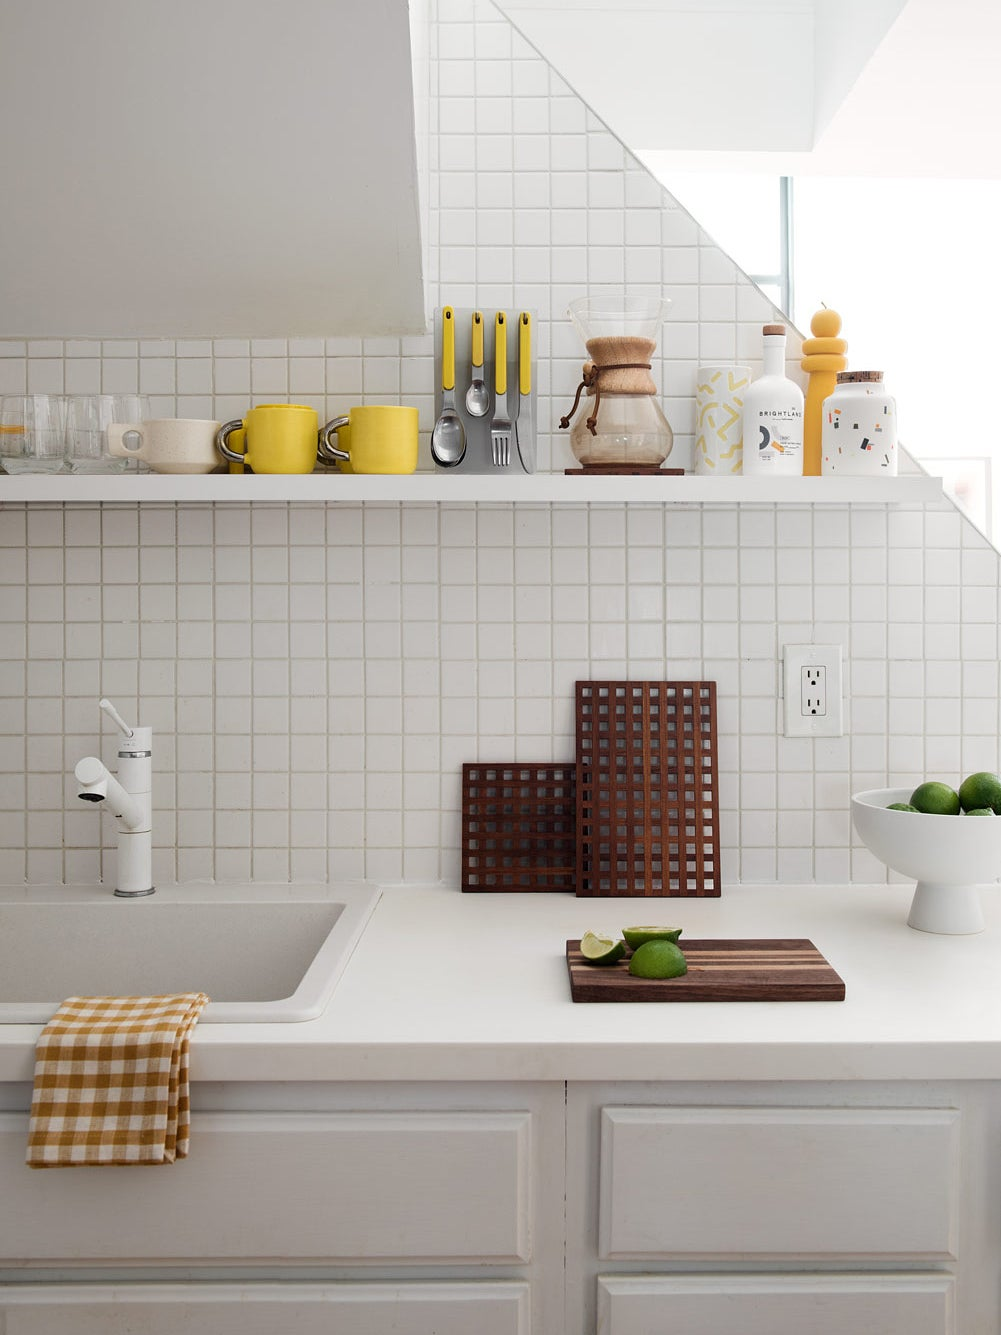 00-FEATURE-kitchen-counter-organizing-domino